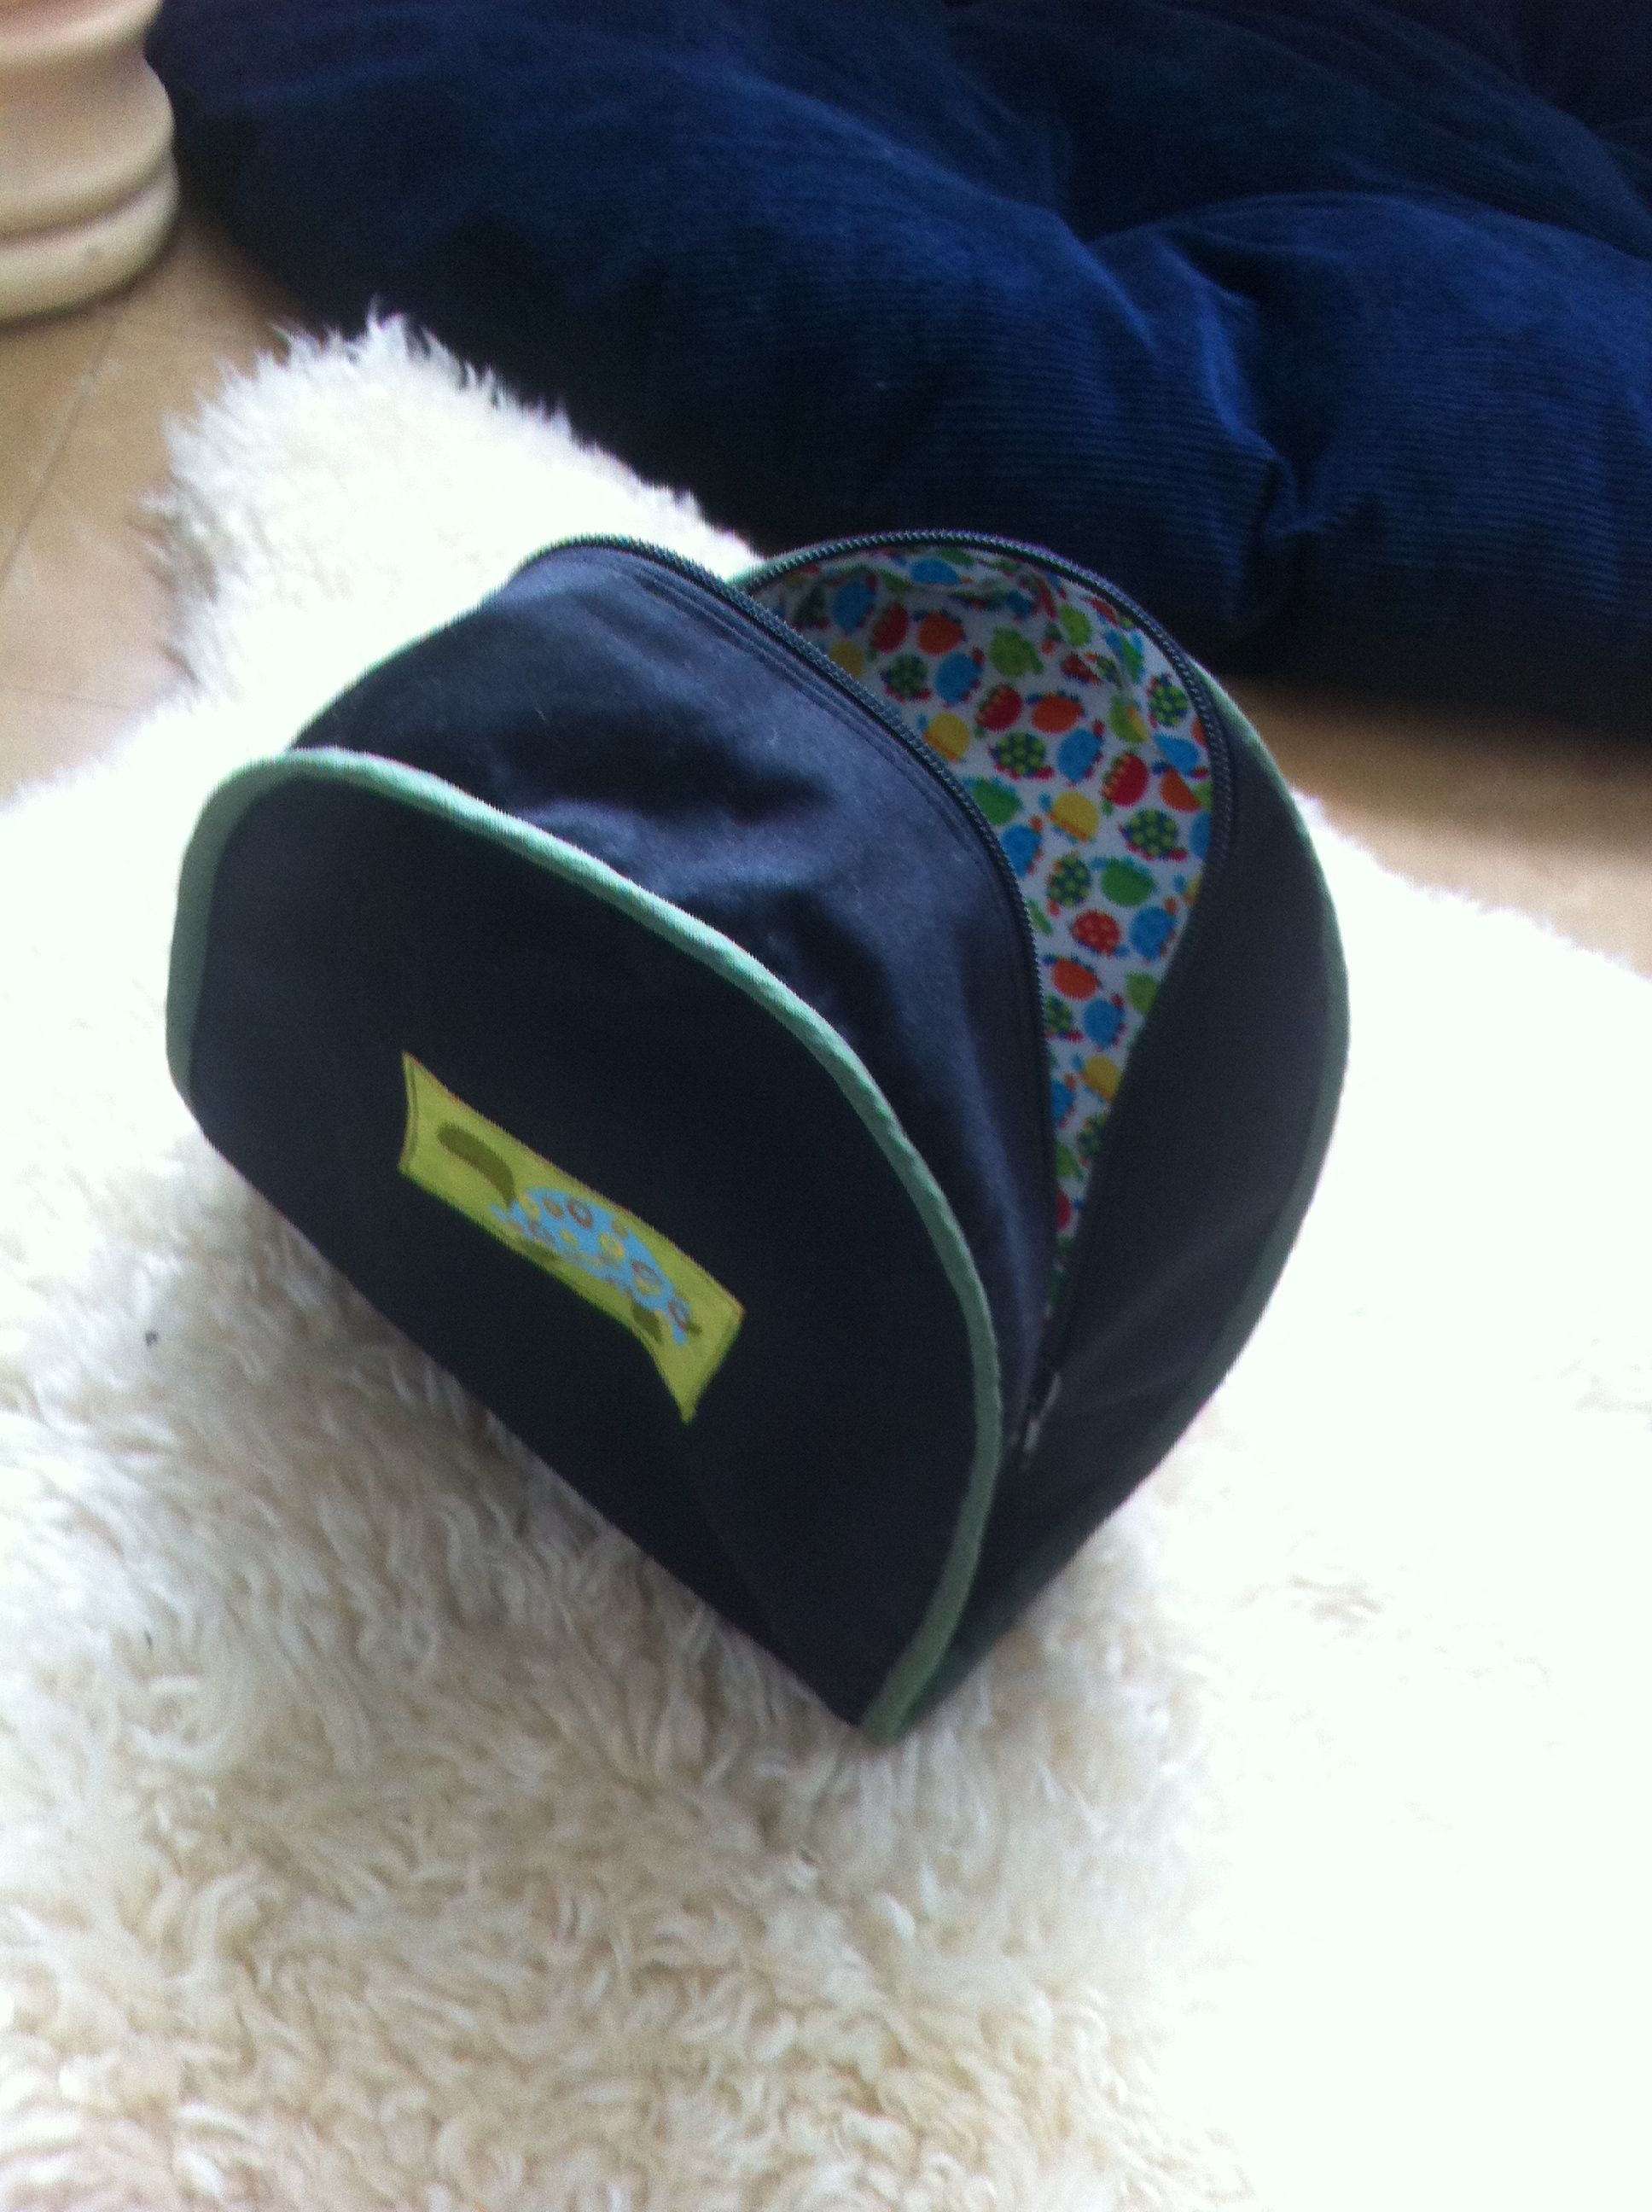 I made hubby a fishing rod bag and this reel case - now is that love or what!!